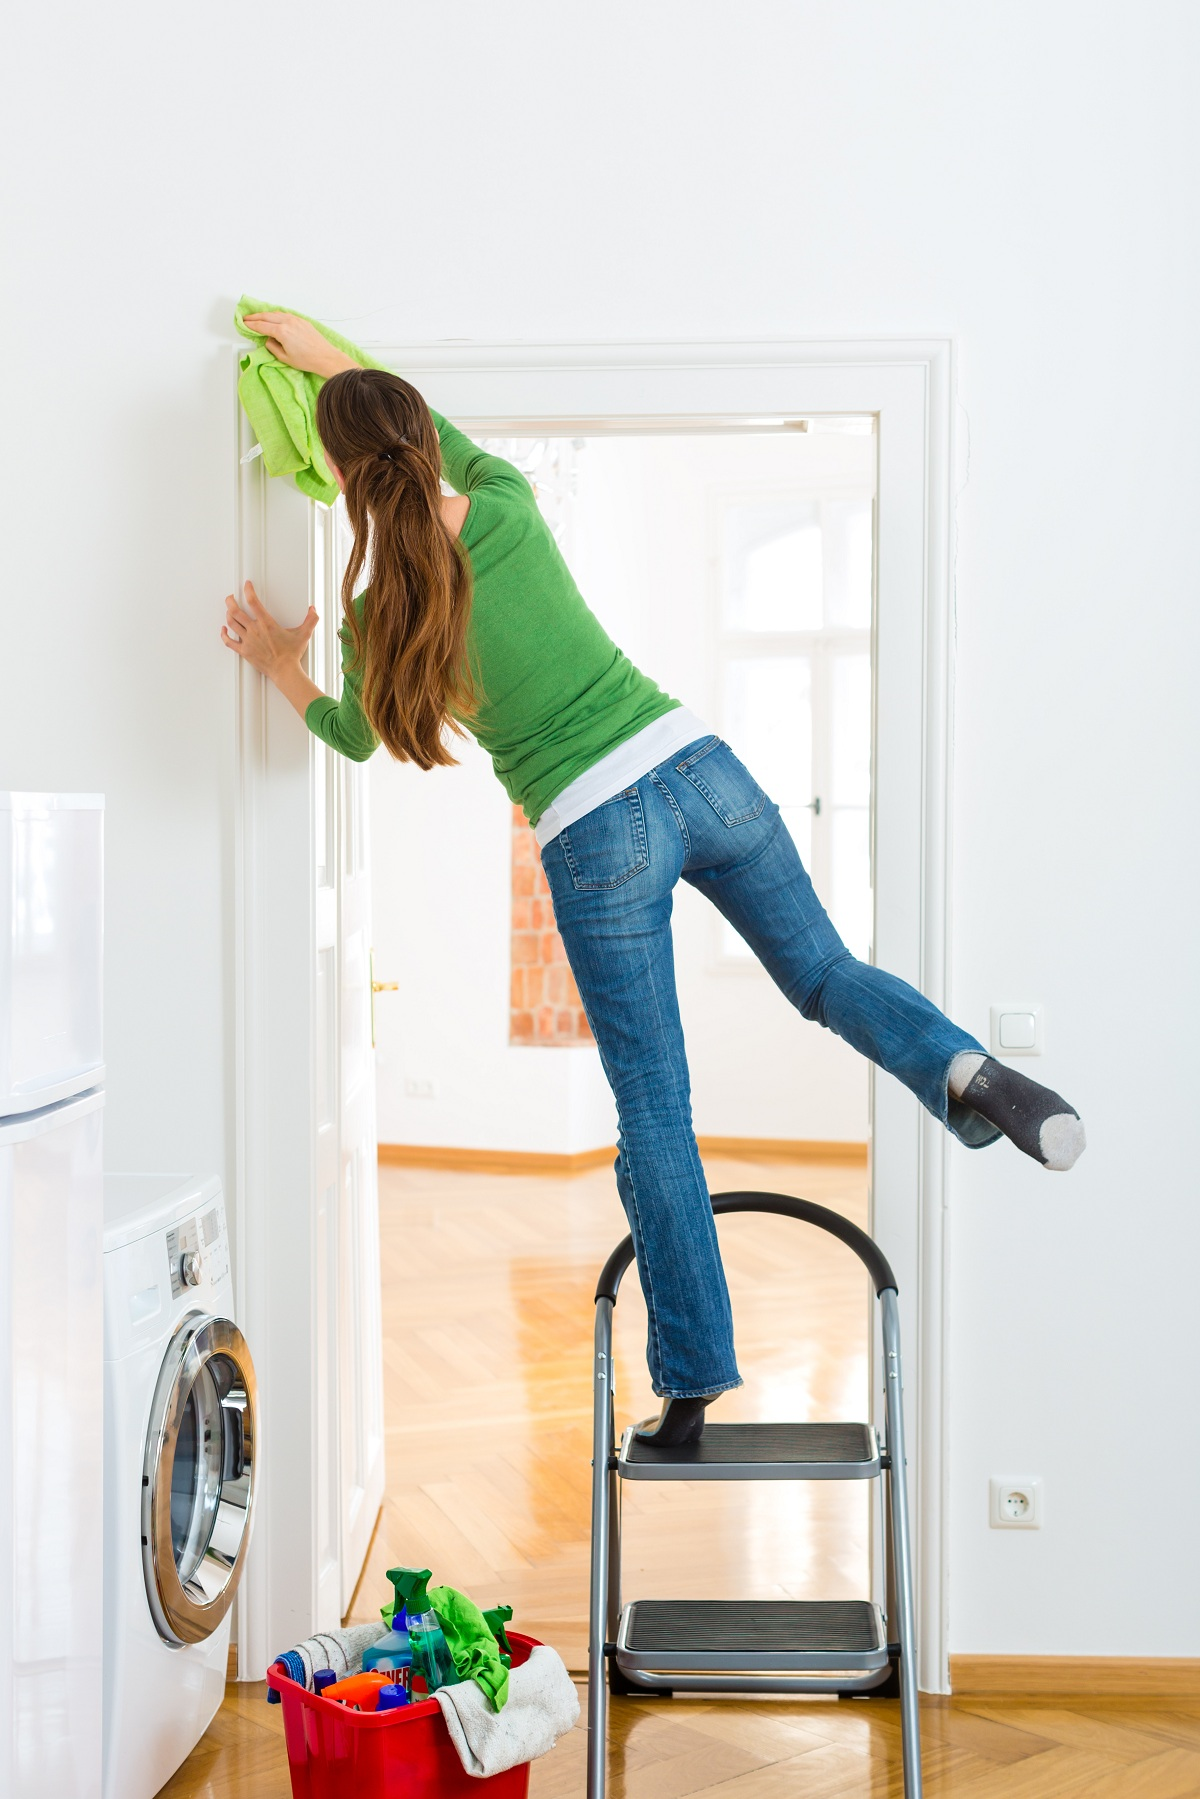 How To Clean Your Home Faster and Easier